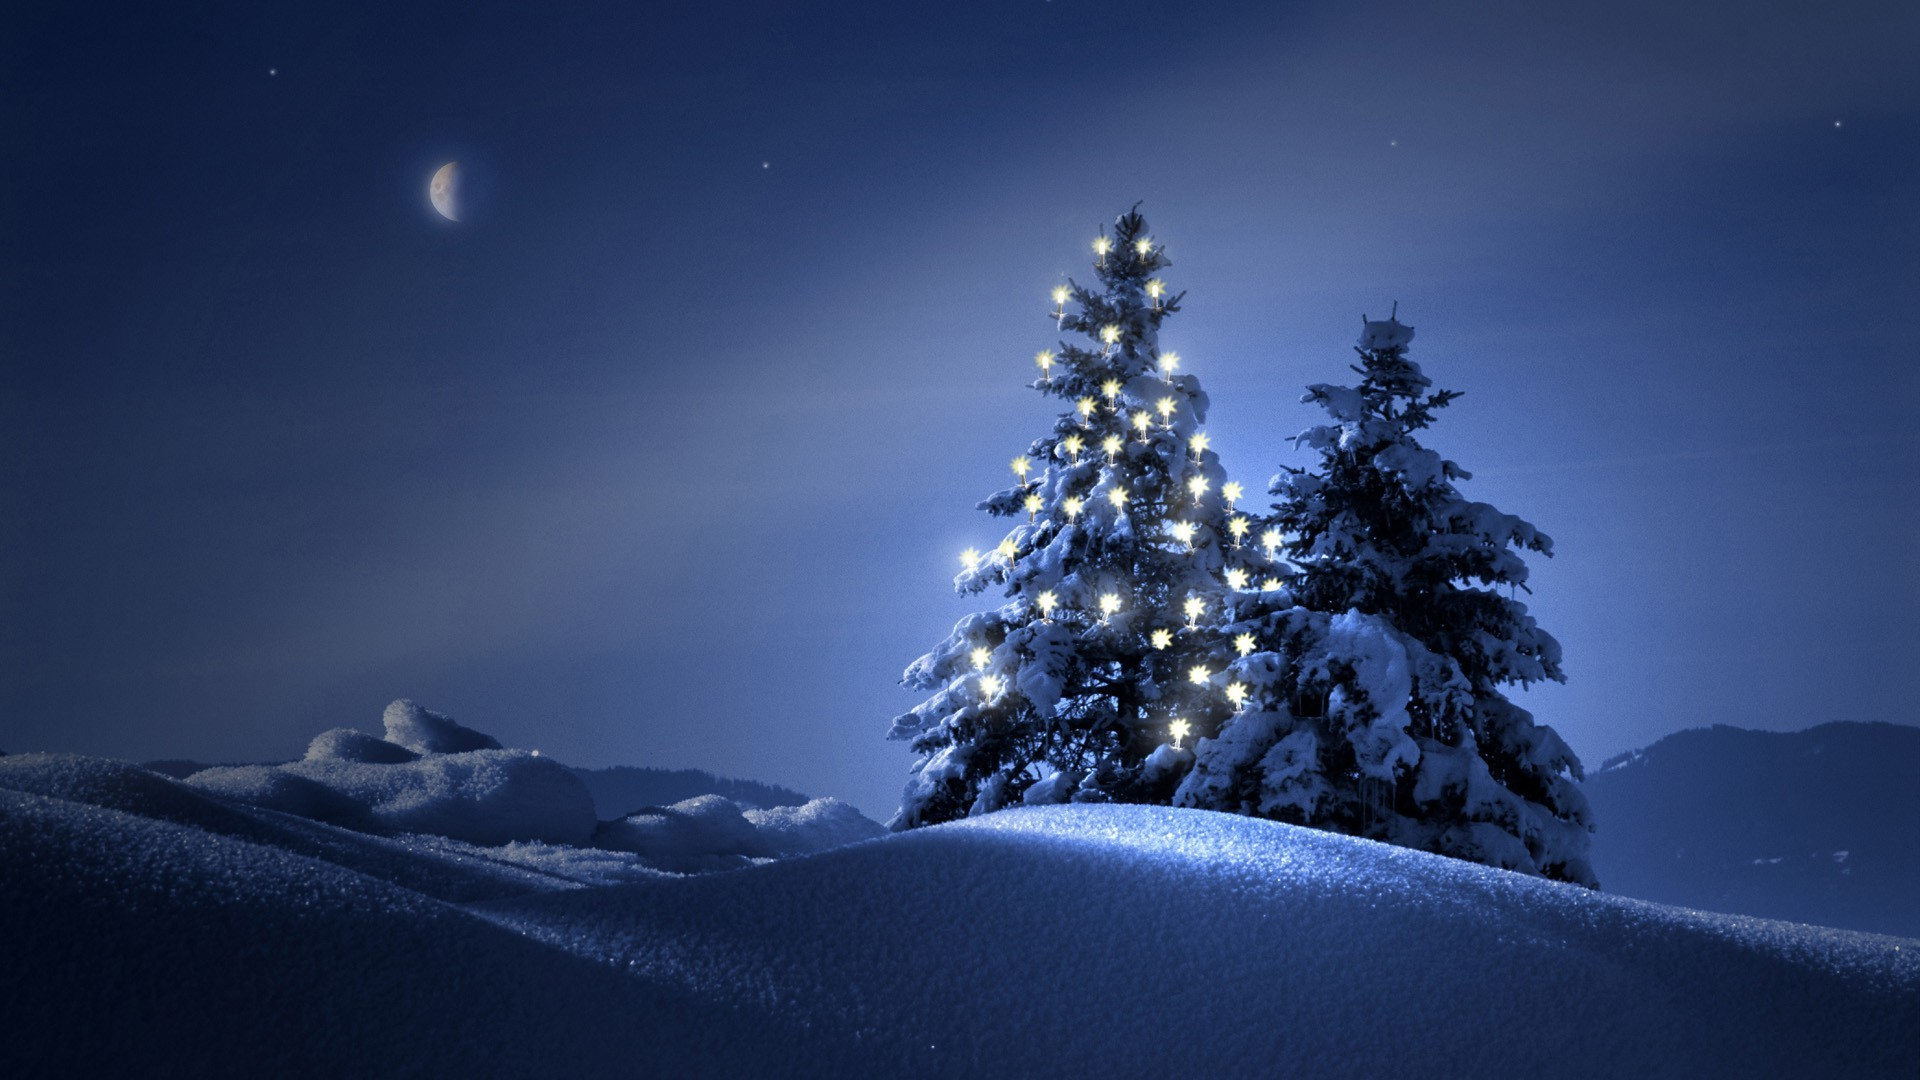 Snowy Desktop Backgrounds - WallpaperSafari